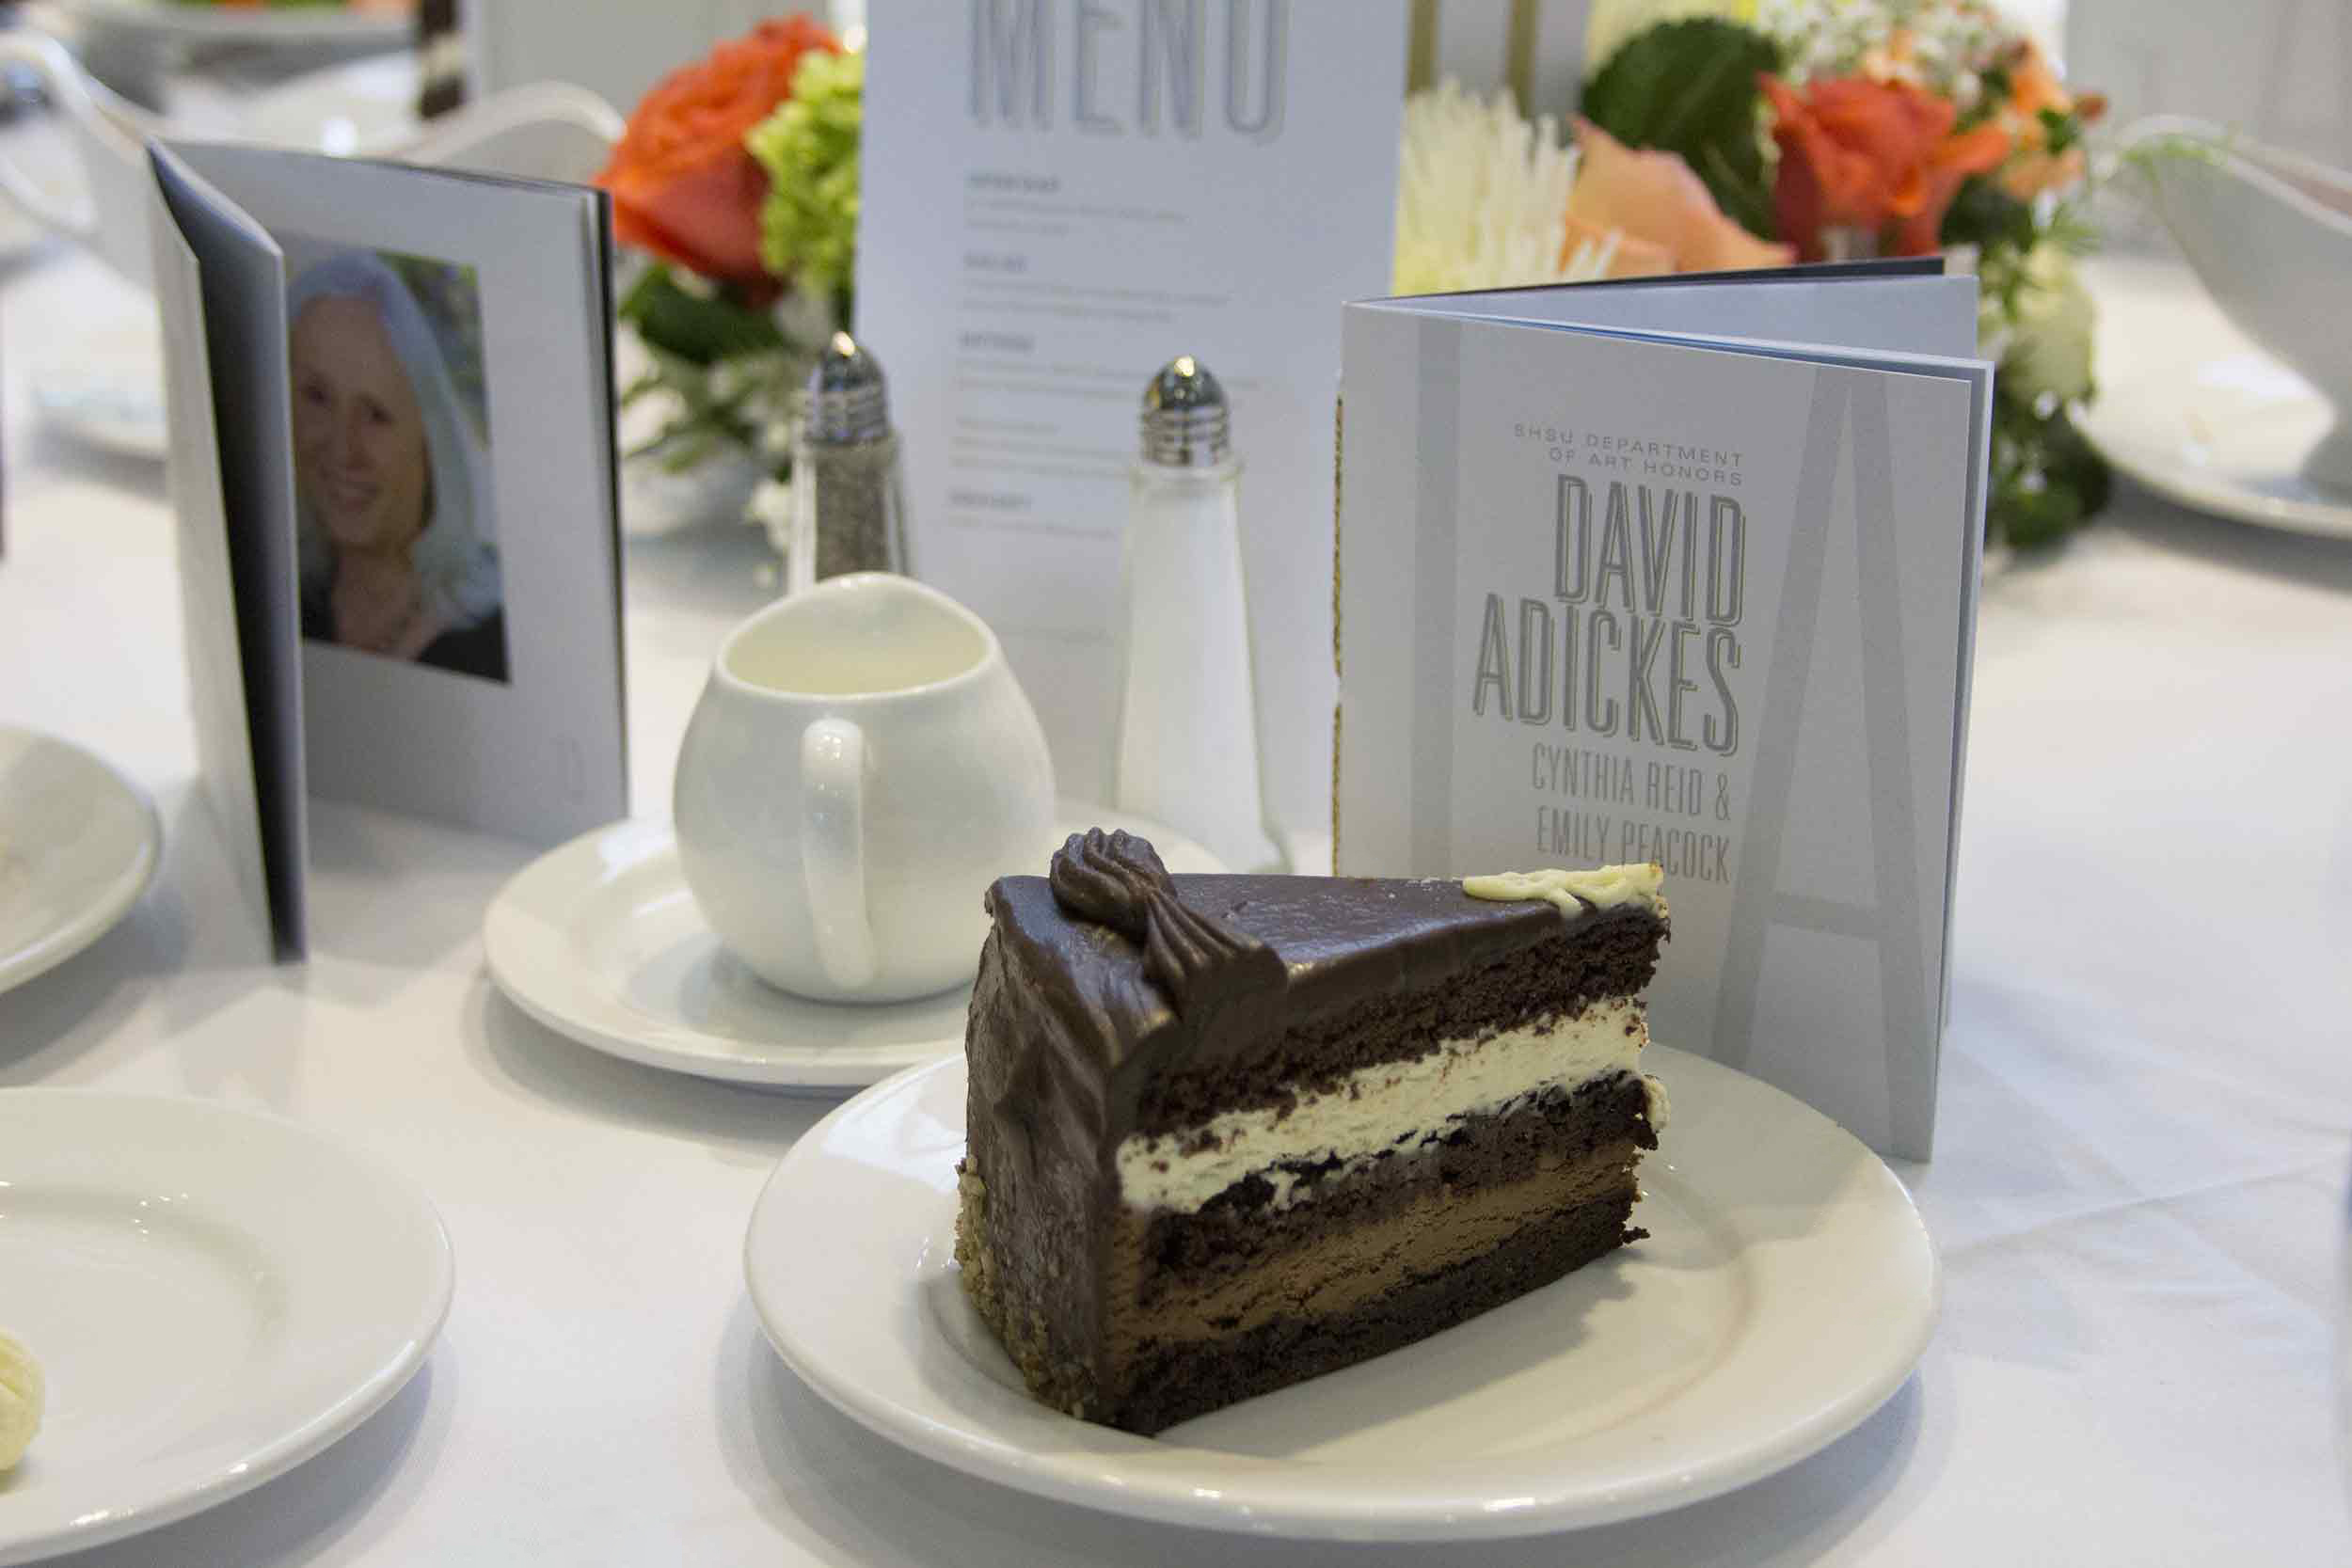 Triple layer choclate cake on a white plate with white linens with gala program and menu on a table adjacent to a vibrant floral arrangement